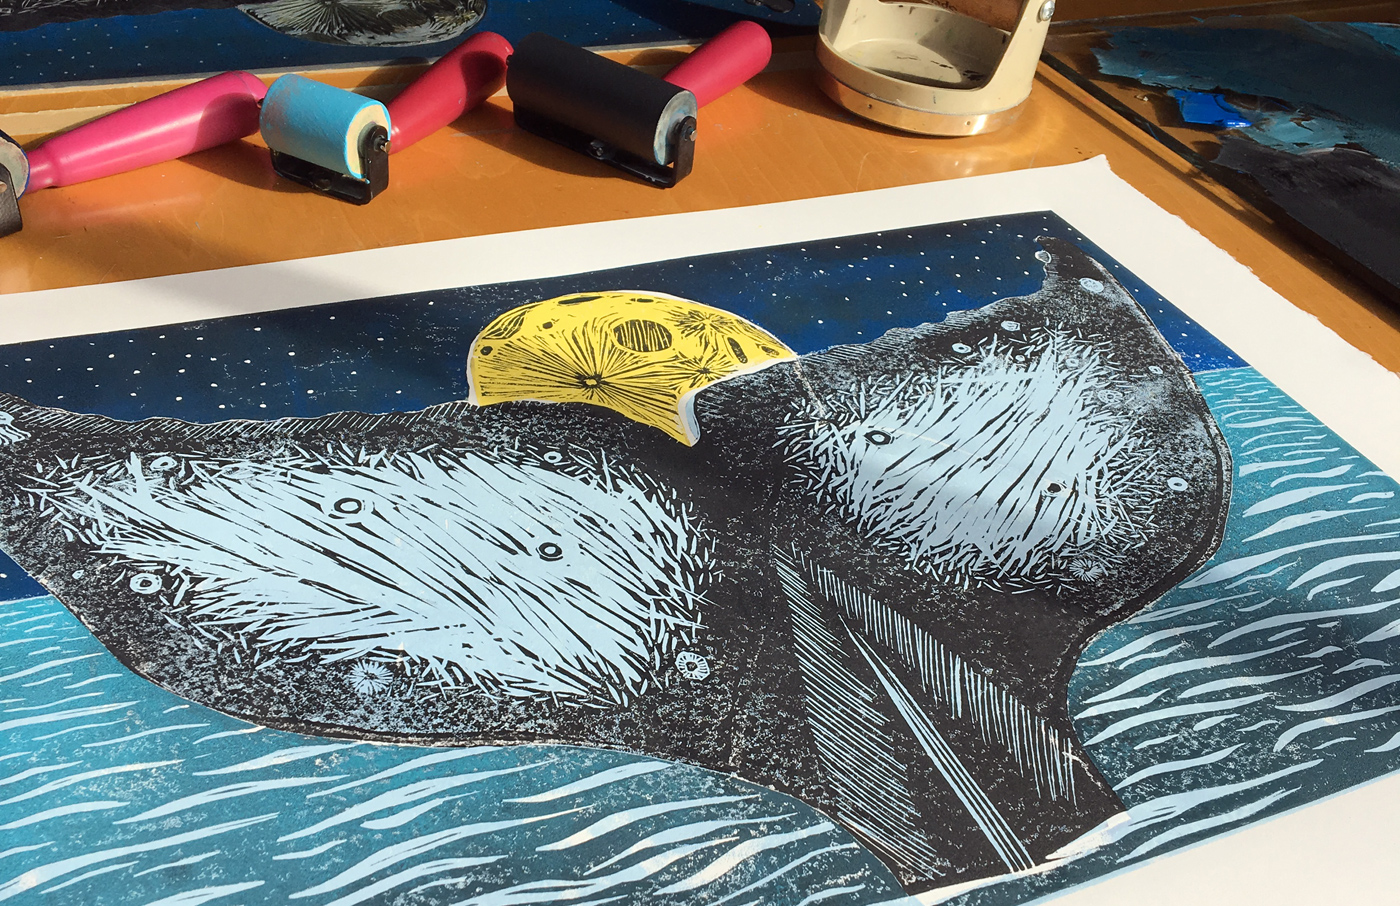 moon whale tail linocut block print artistic process